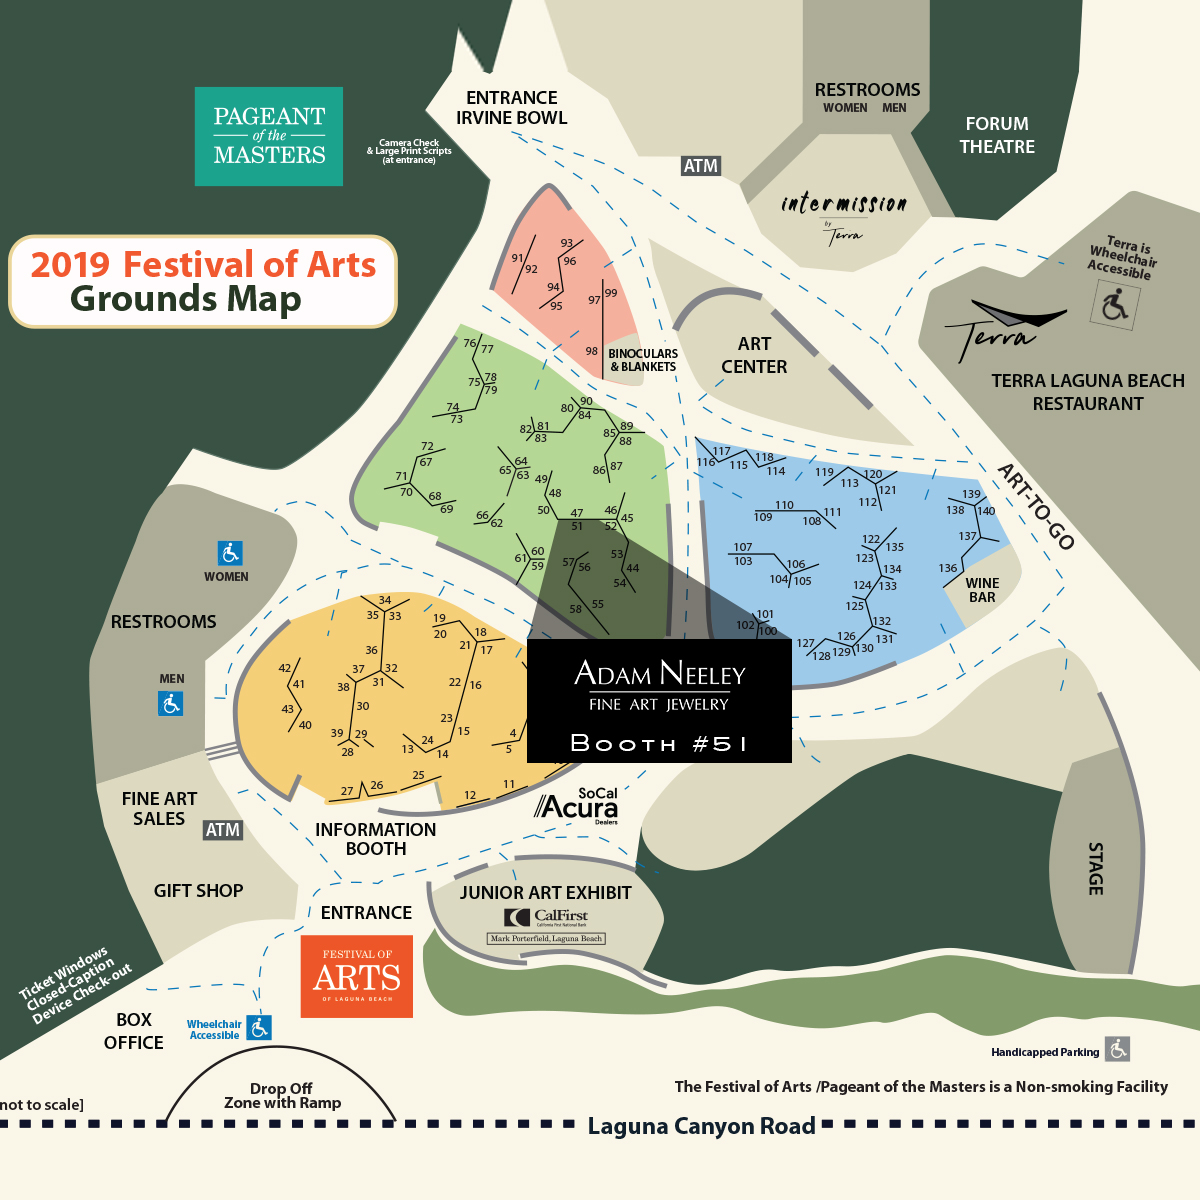 2019 Festival of Arts Map